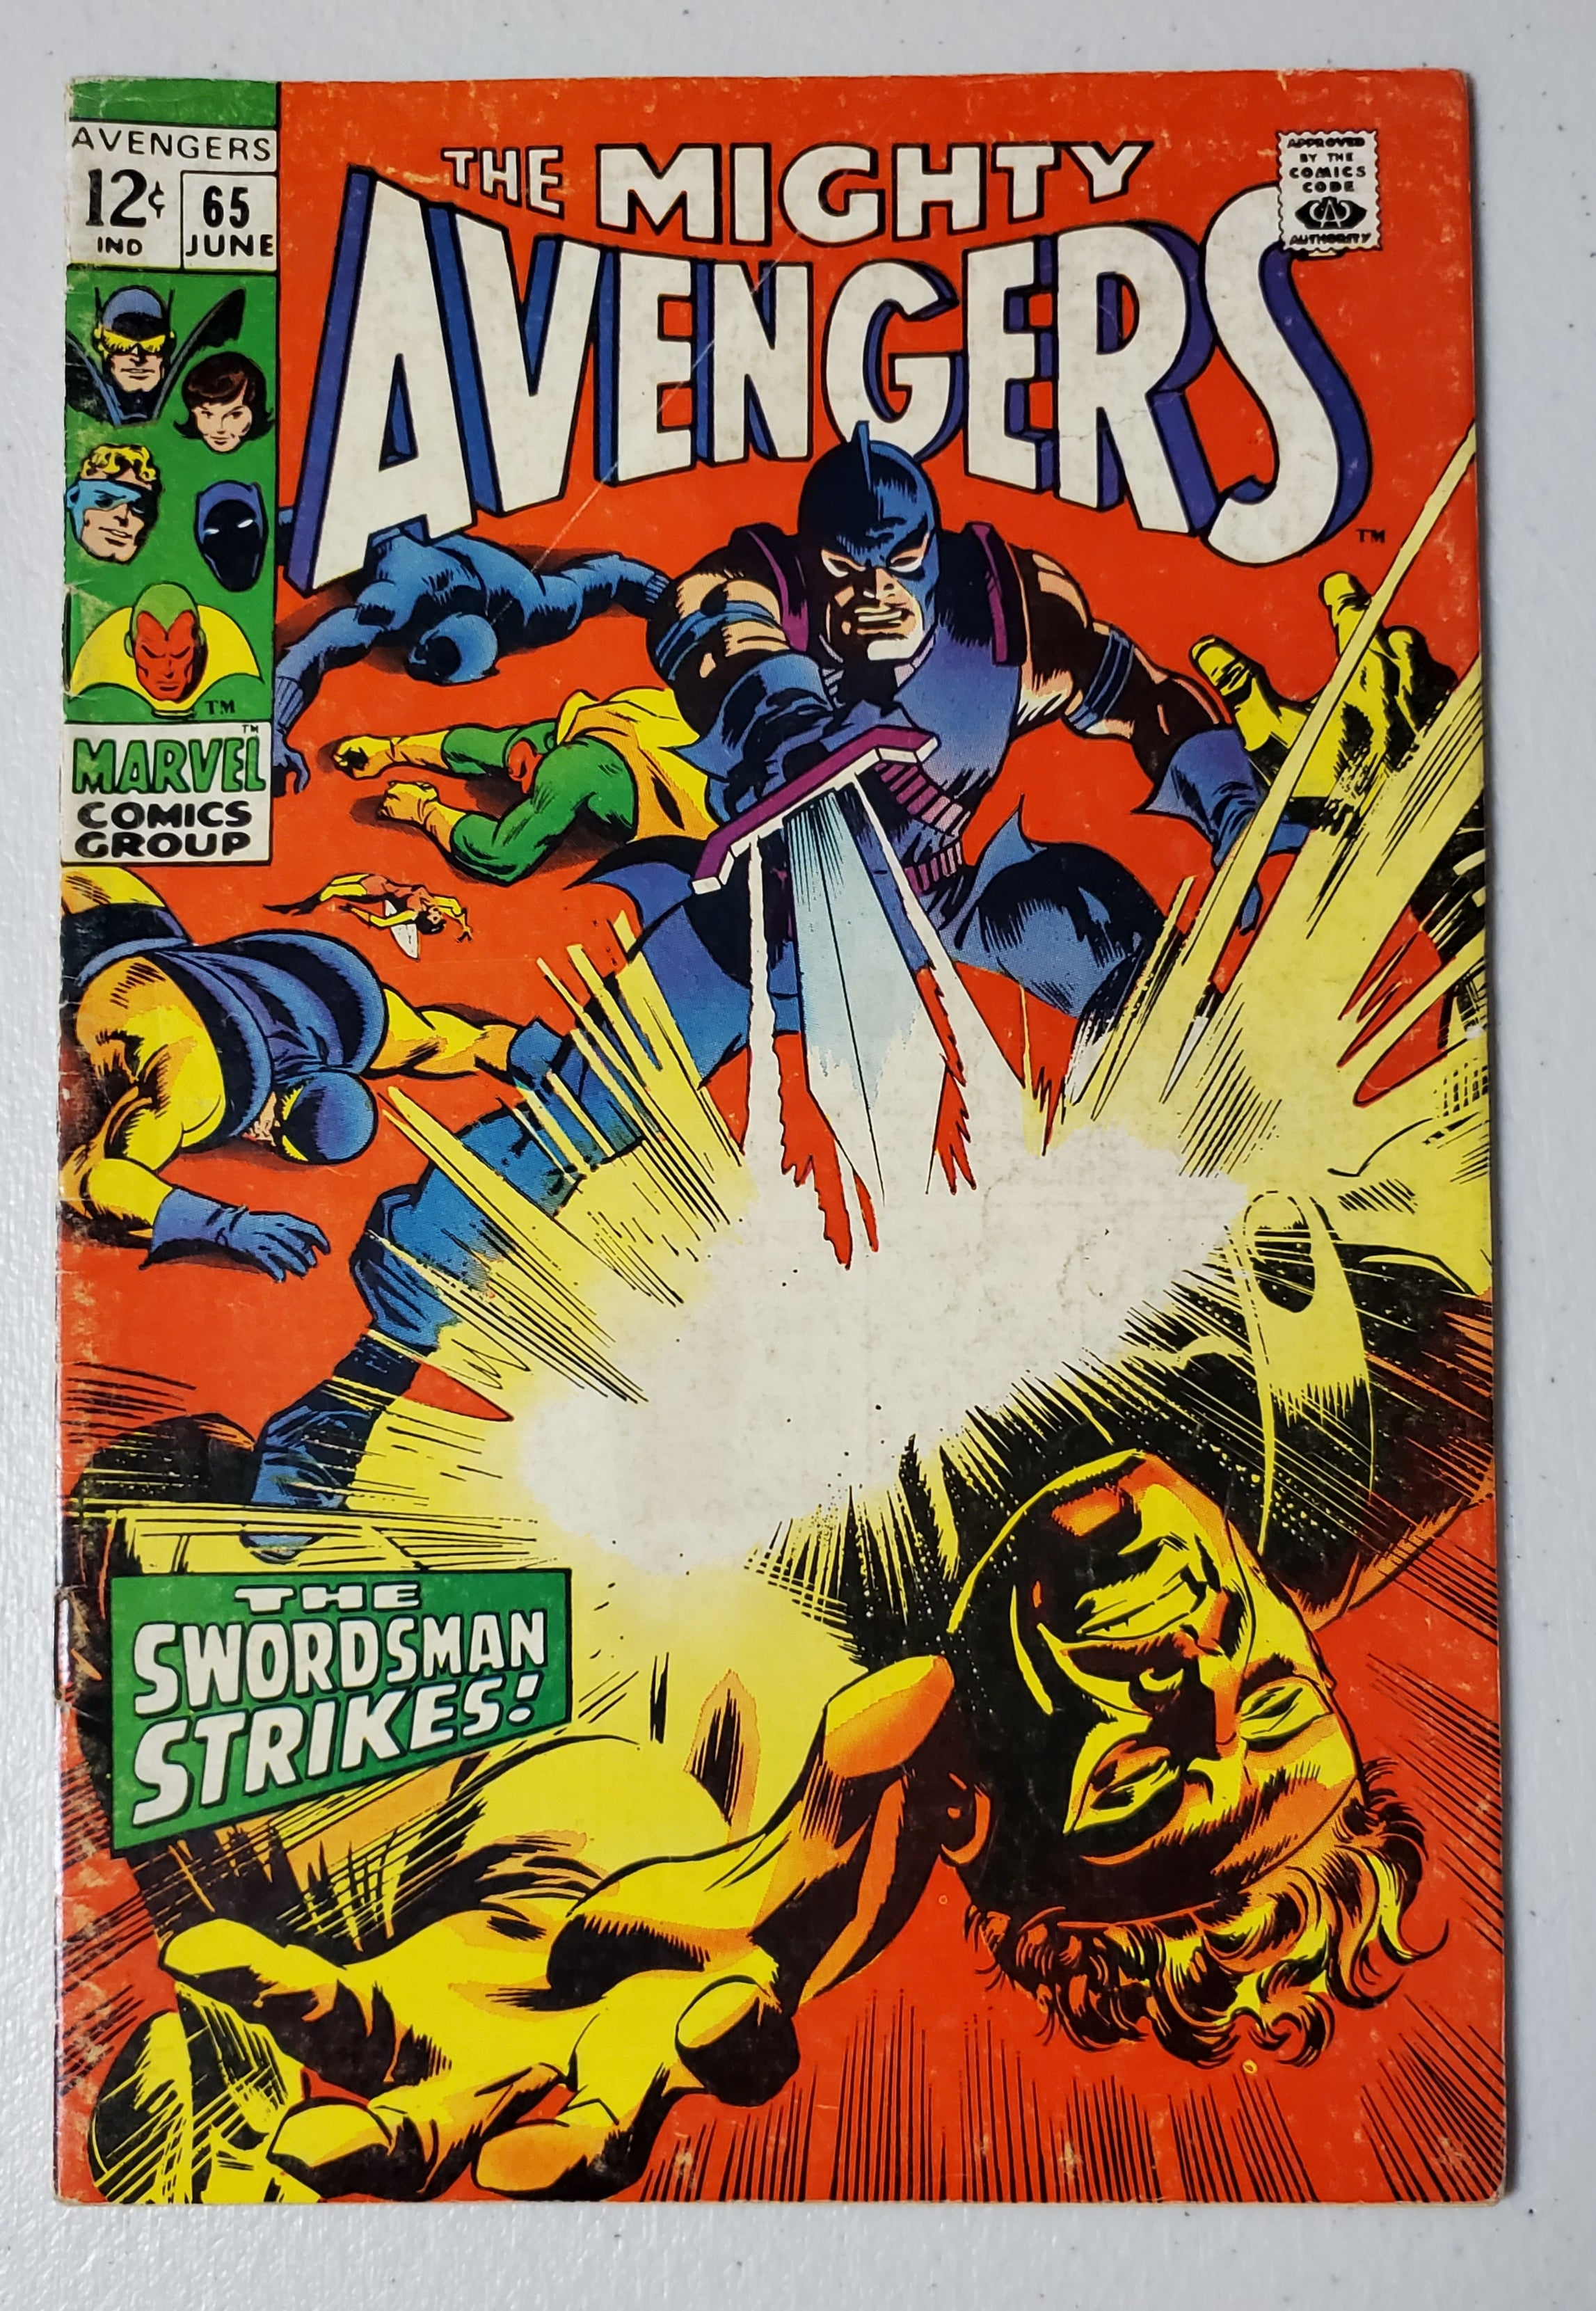 AVENGERS #65 (LAST 12 CENT ISSUE) 1969